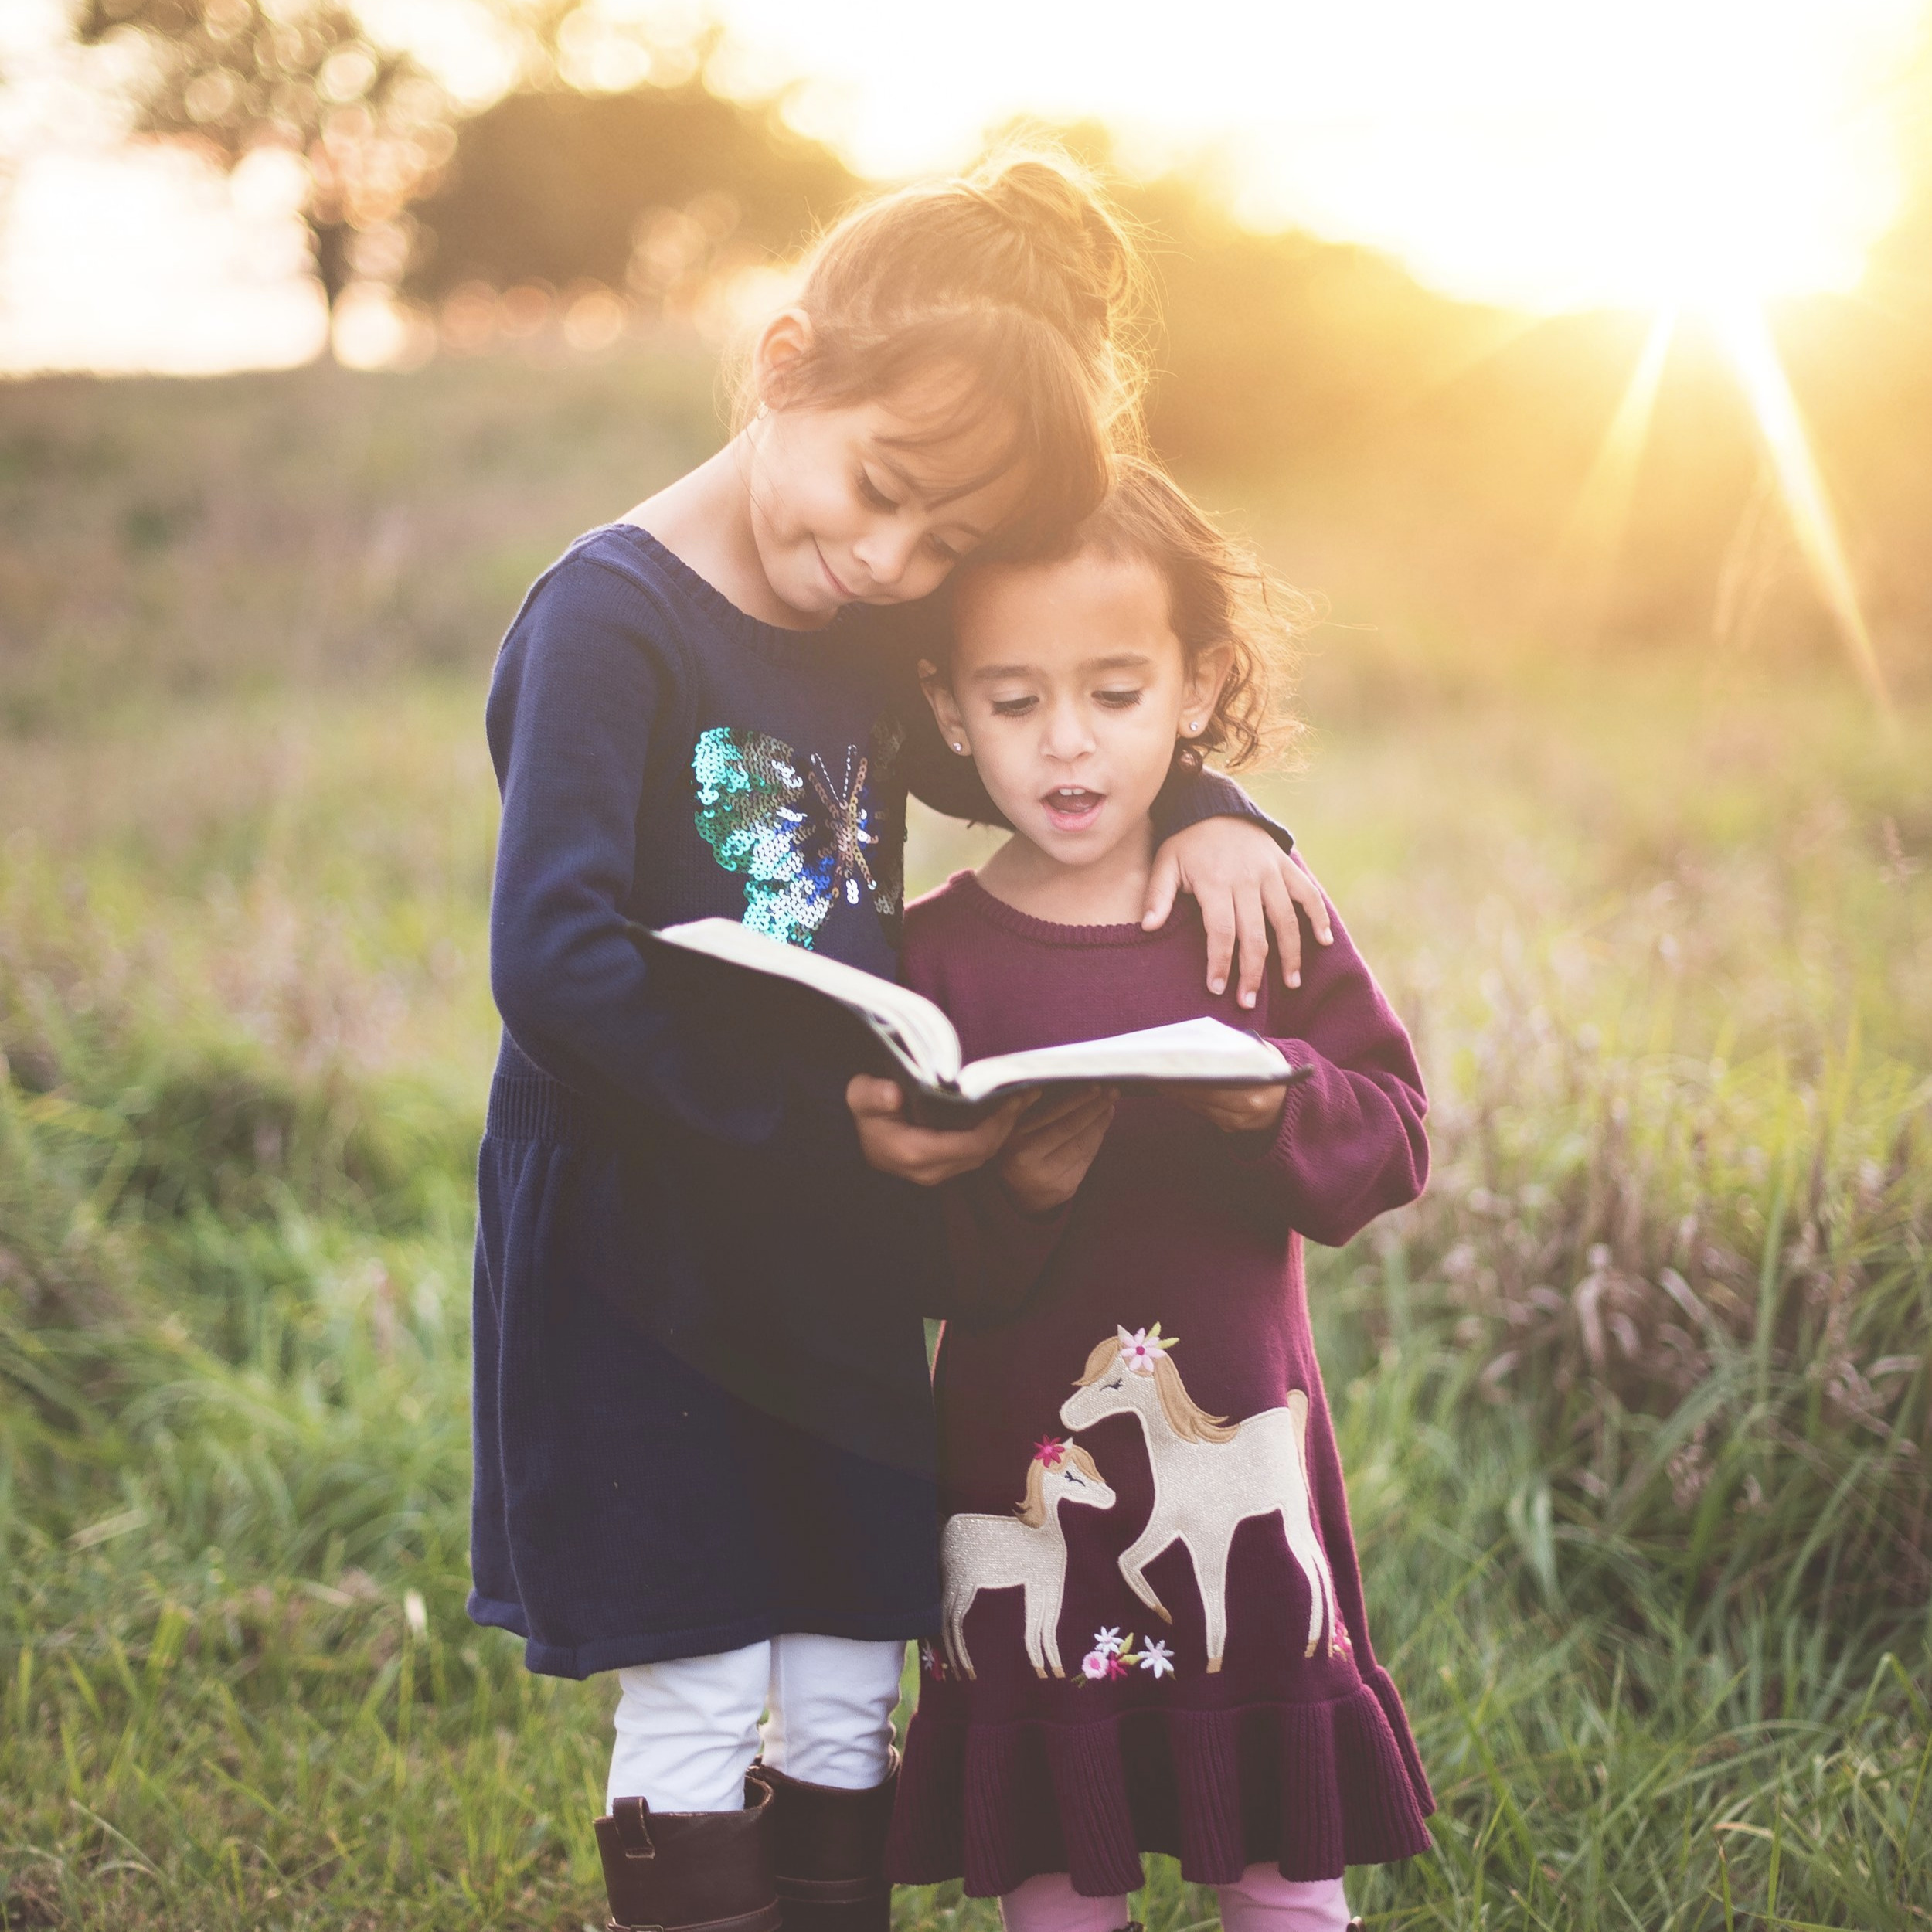 SUNDAY SCHOOL - We ensure that our children are built in the knowledge of God's word